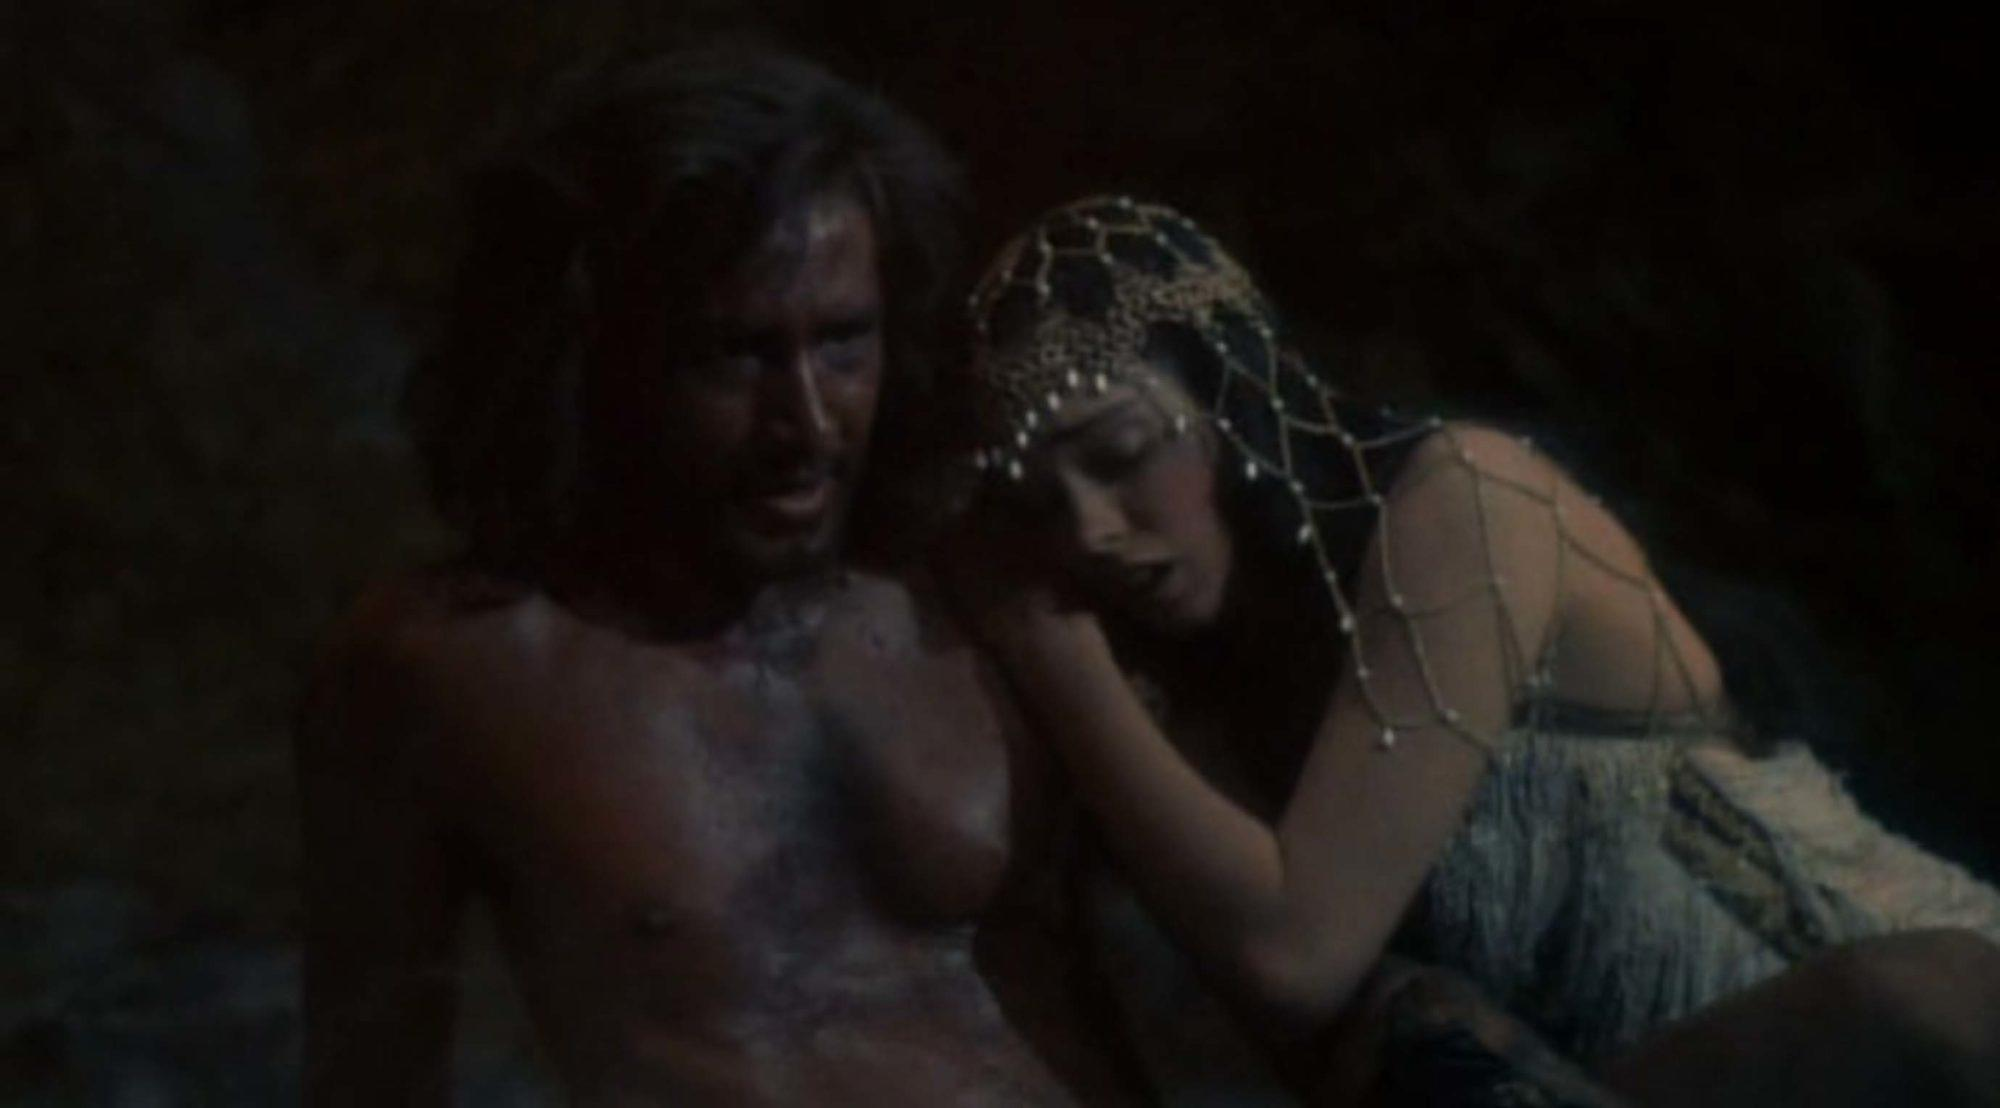 Kathleen Beller and Lee Horsley in The Sword and the Sorcerer (1982)